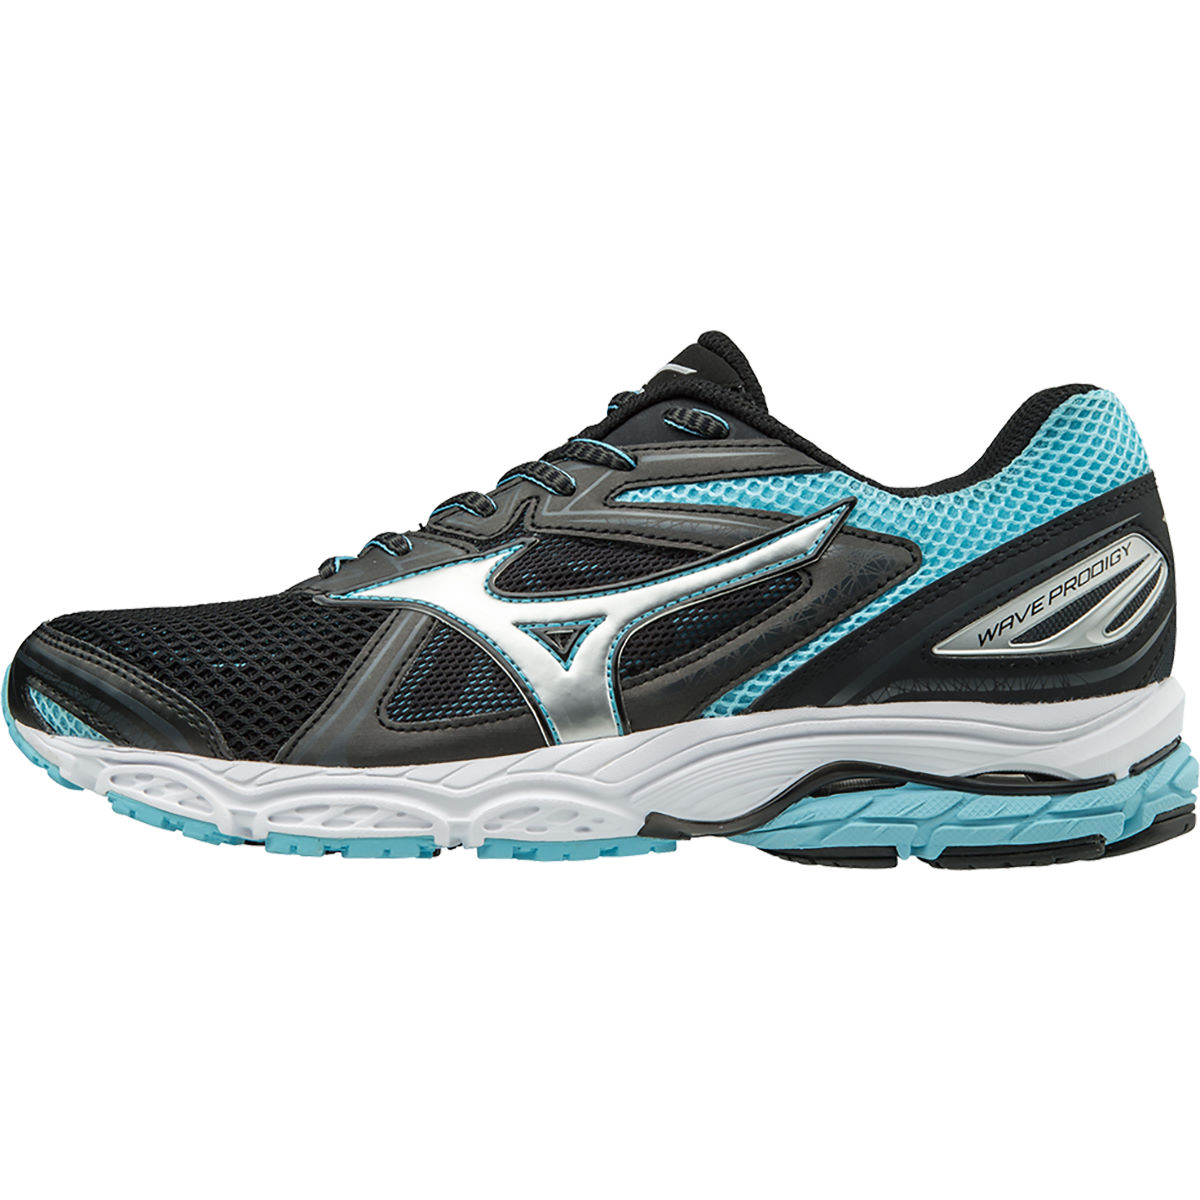 Chaussures Femme Mizuno Wave Prodigy - UK 4 Black/Silver/BlueTop